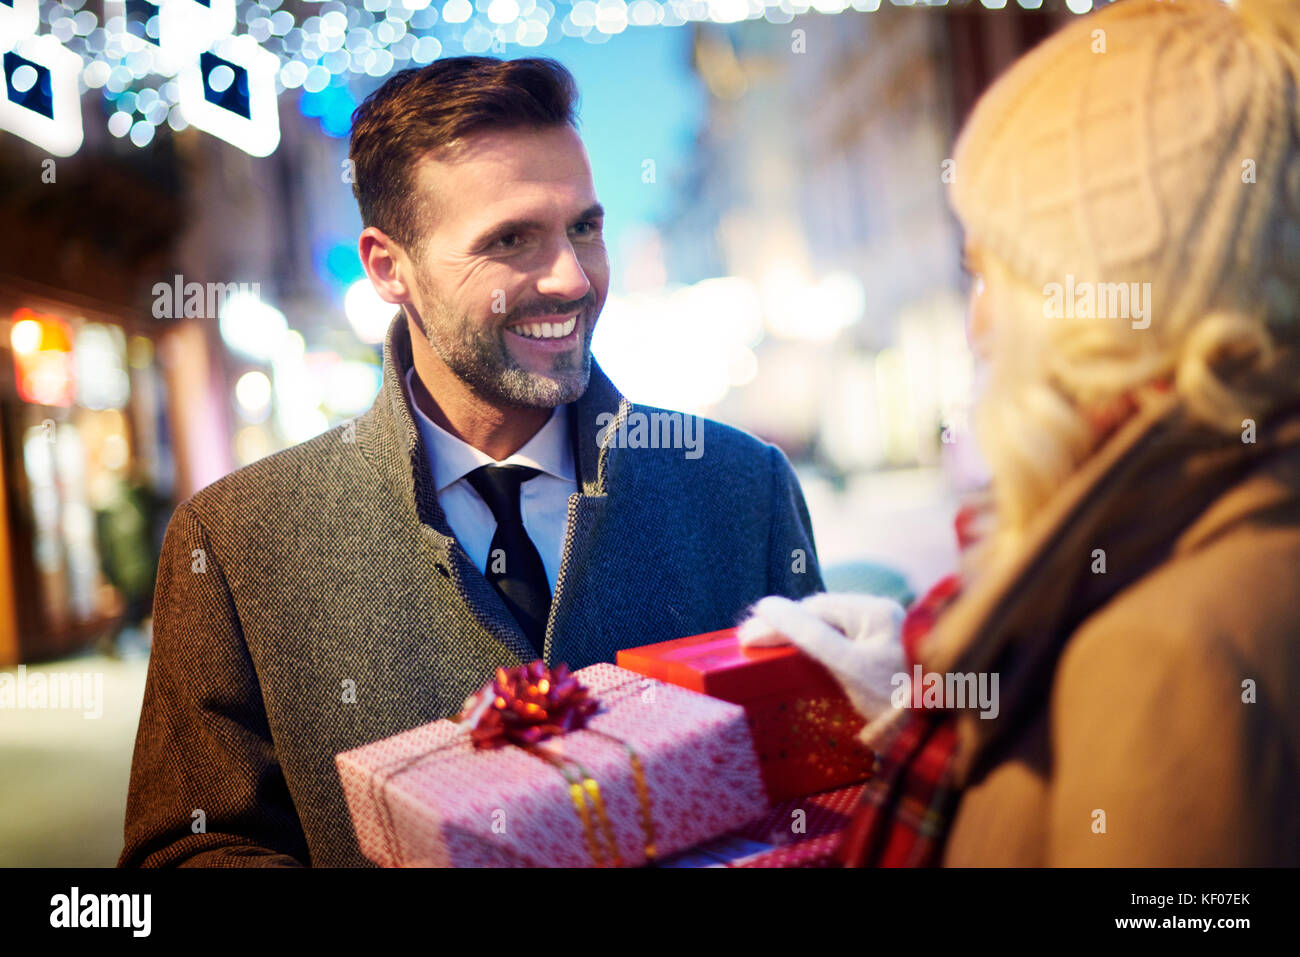 Man surprising woman with unexpected gifts - Stock Image